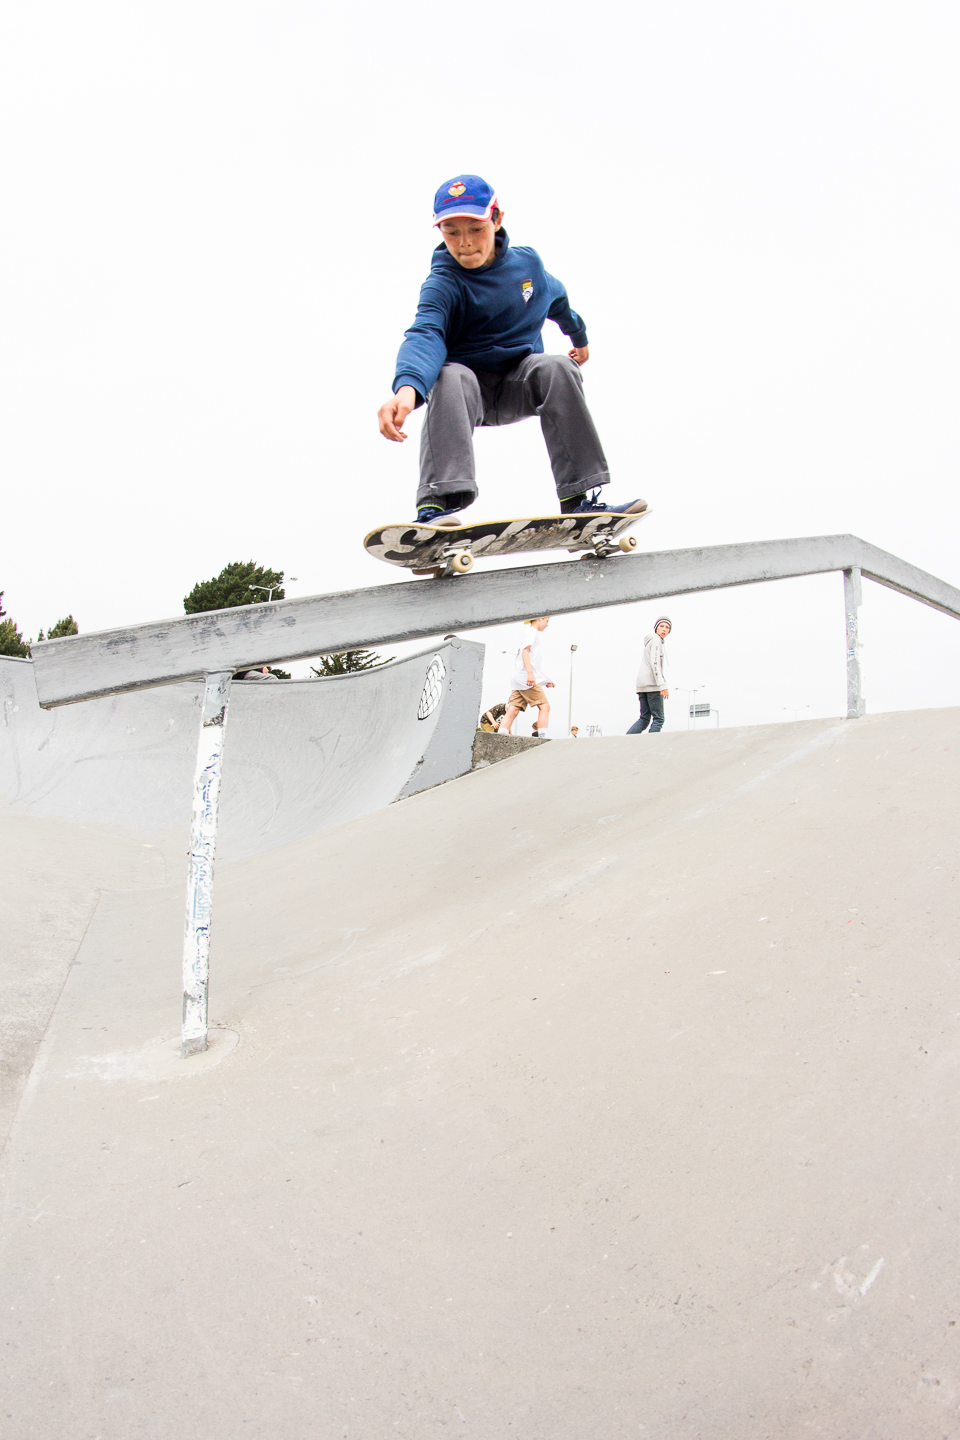 Matt Lucas - 5050 / Jack Grant Photo